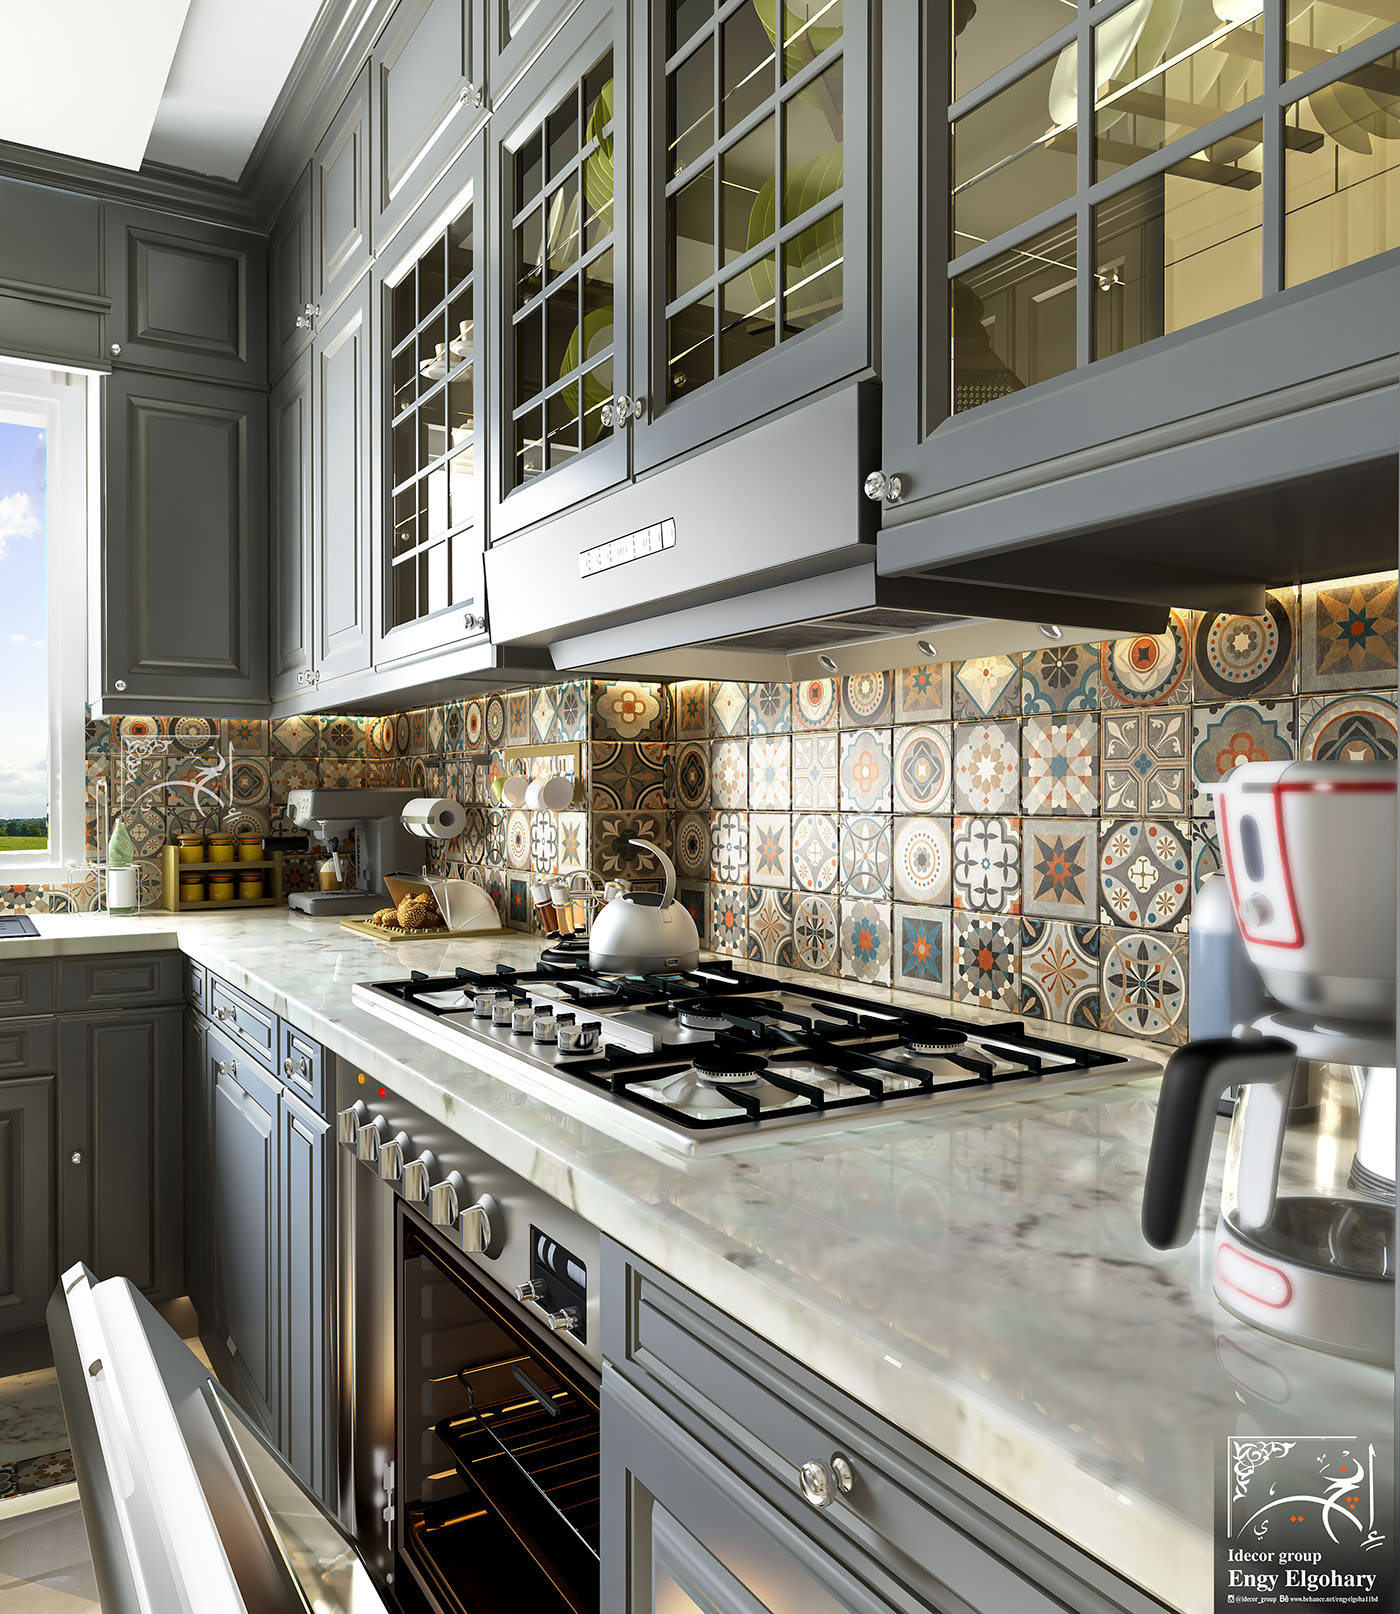 a kitchen with arabian touches is on Behance on jewish house design, black house design, zinc house design, egyptian house design, northport house design, huge house design, hispanic house design, indian house design, arch house design, common house design, afghan house design, wizard house design, japanese house design, english house design, muslim house design, cartoon house design, gothic house design, russian house design, turkish house design, birmingham house design,